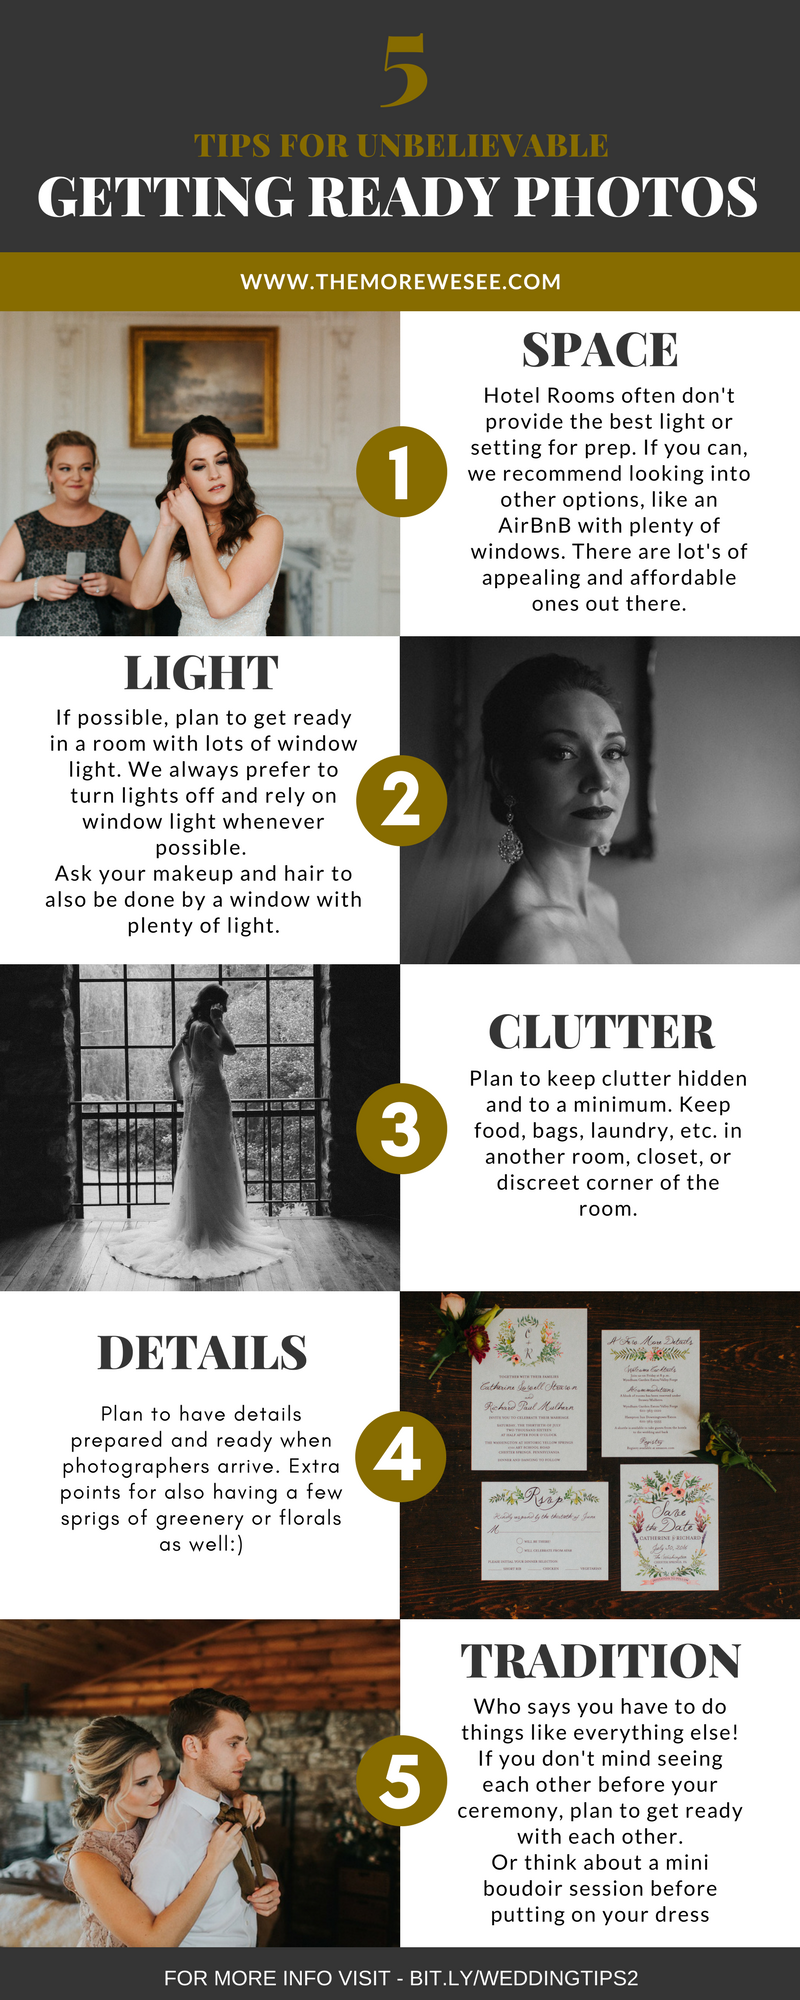 5 Tips For Unbelievable Getting Ready Photos - Click the download button below to download the cheat sheet.